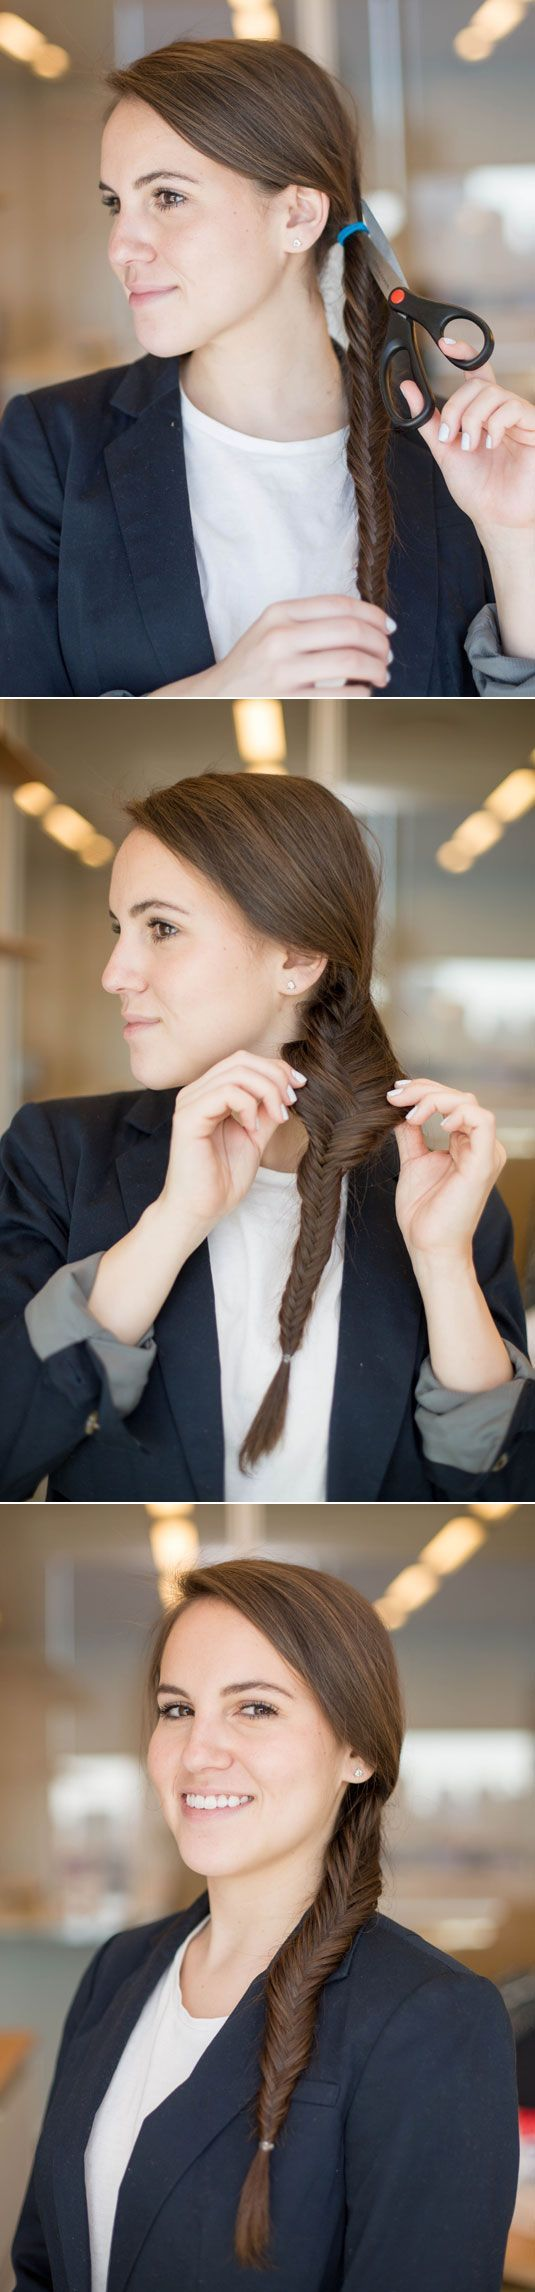 Easy Hairstyles - Fast and Simple Hair Styles for long hair - rubinextensions - hair extensions  Check out our website: rubin-extensions.com